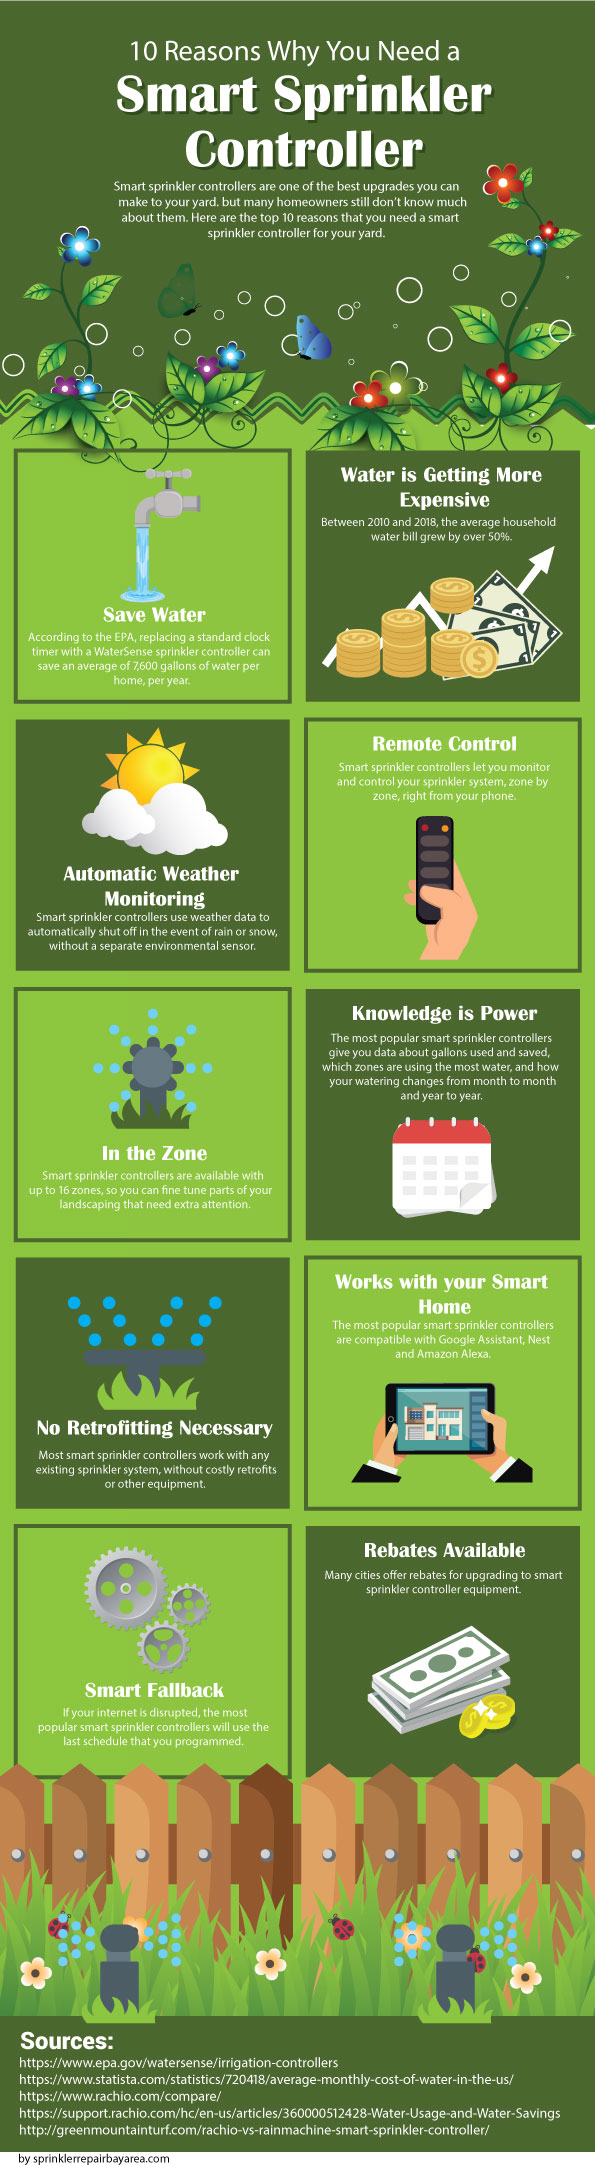 10 reasons why you need a smart sprinkler controller infographic